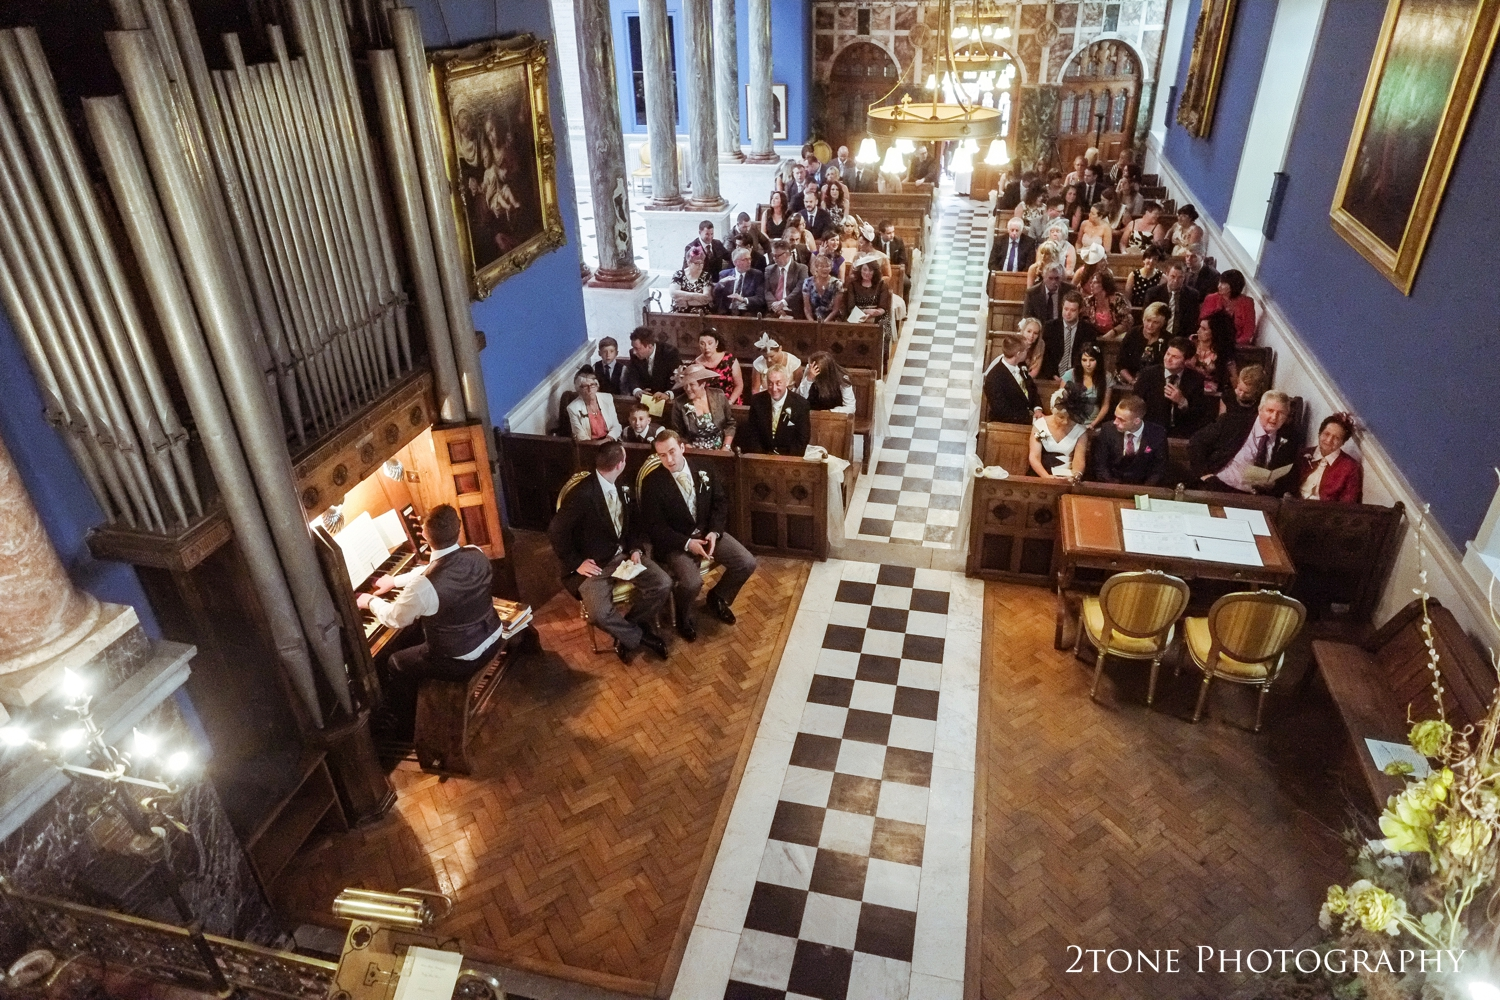 The stunning chapel originally build as a place of personal worship for the Marquesses of Londonderry is decorated in blue, blue marble and gold.  Wonderfully romantic, it makes the perfect setting for a wedding.